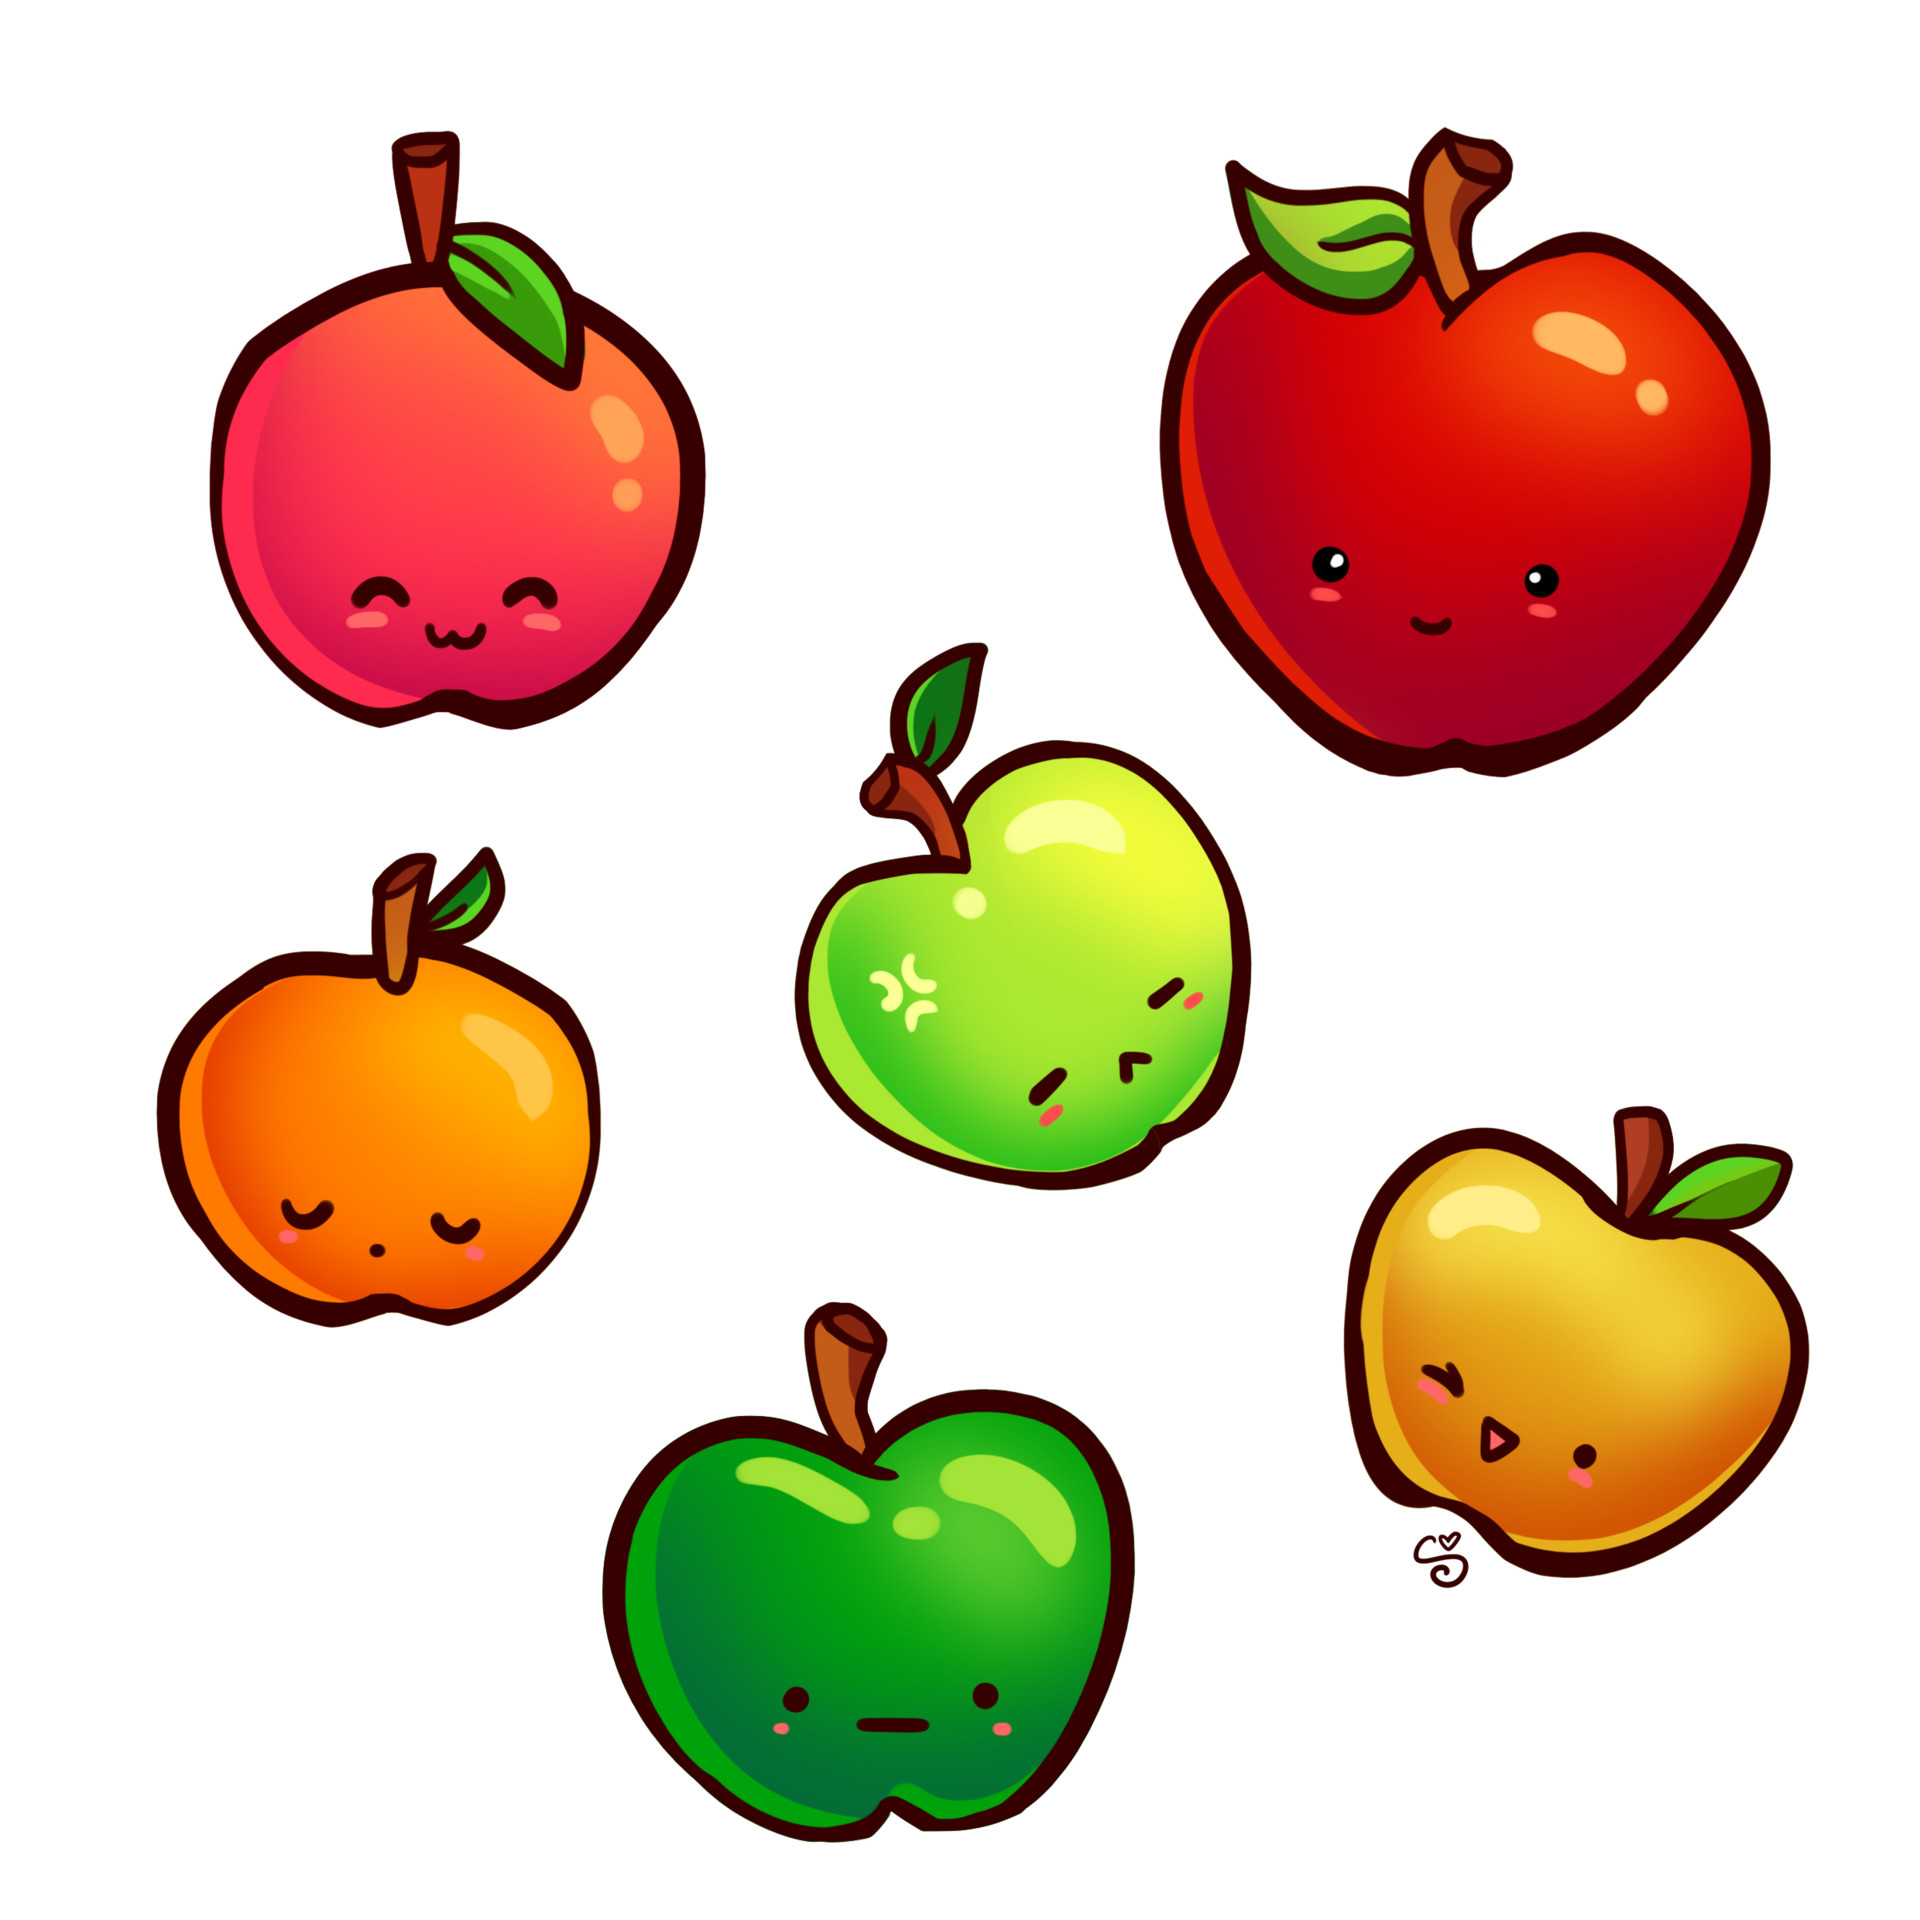 Shellz art kawaii apples